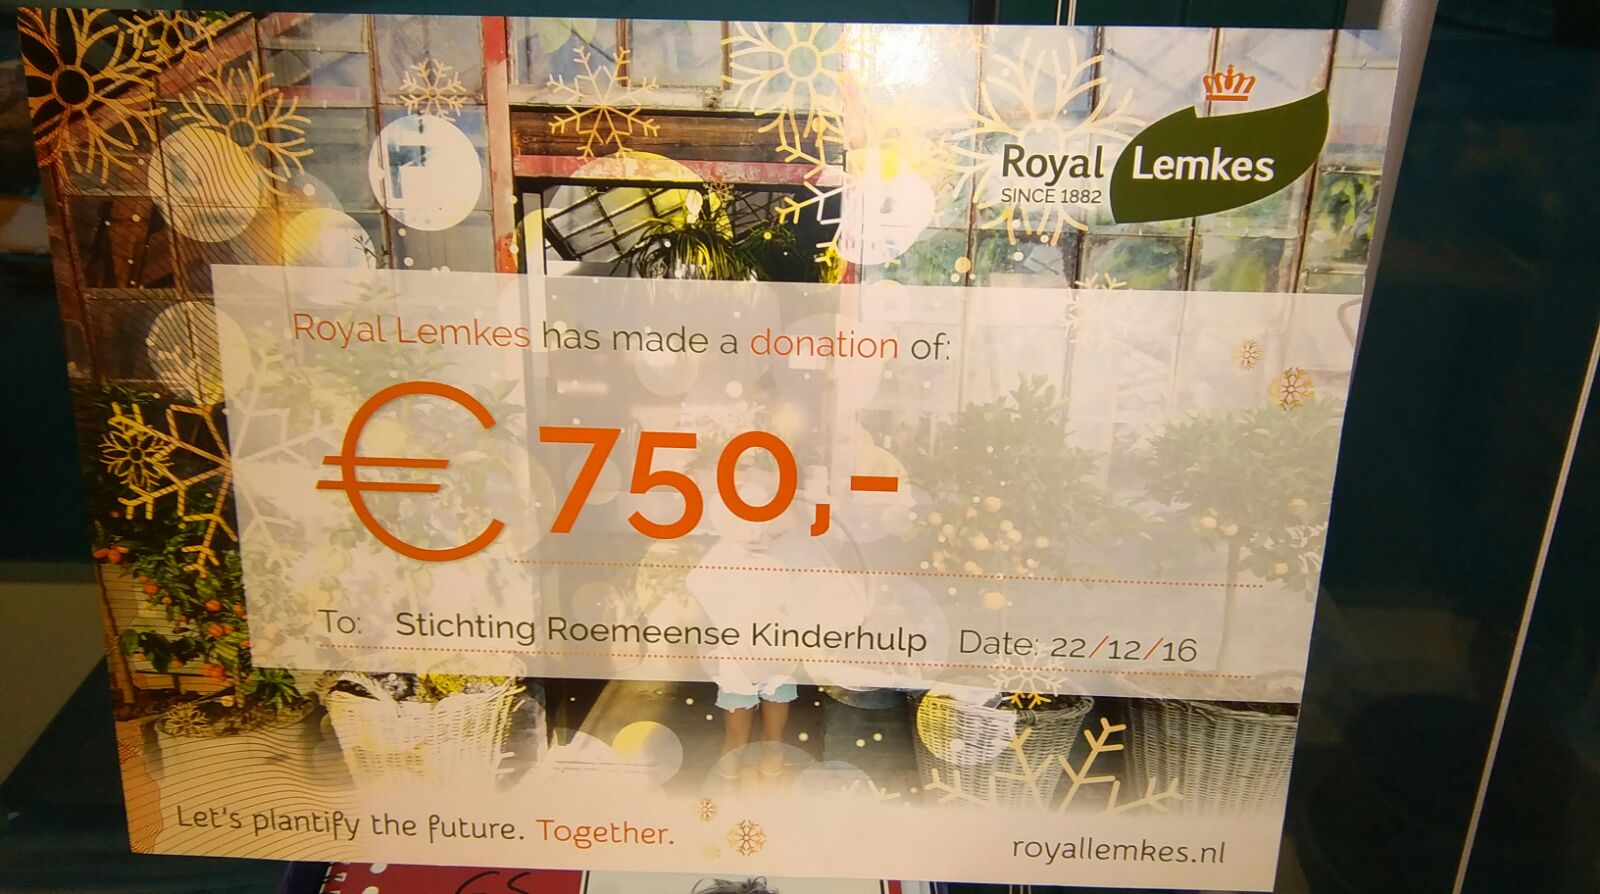 Royal Lemkes cheque